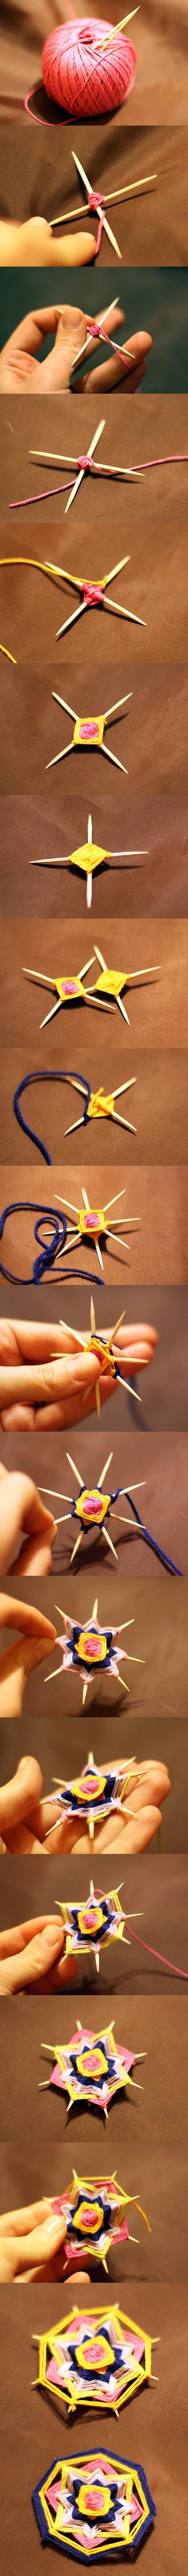 Wonderful DIY 8 Sides Mandala Brooch With Toothpicks | WonderfulDIY.com